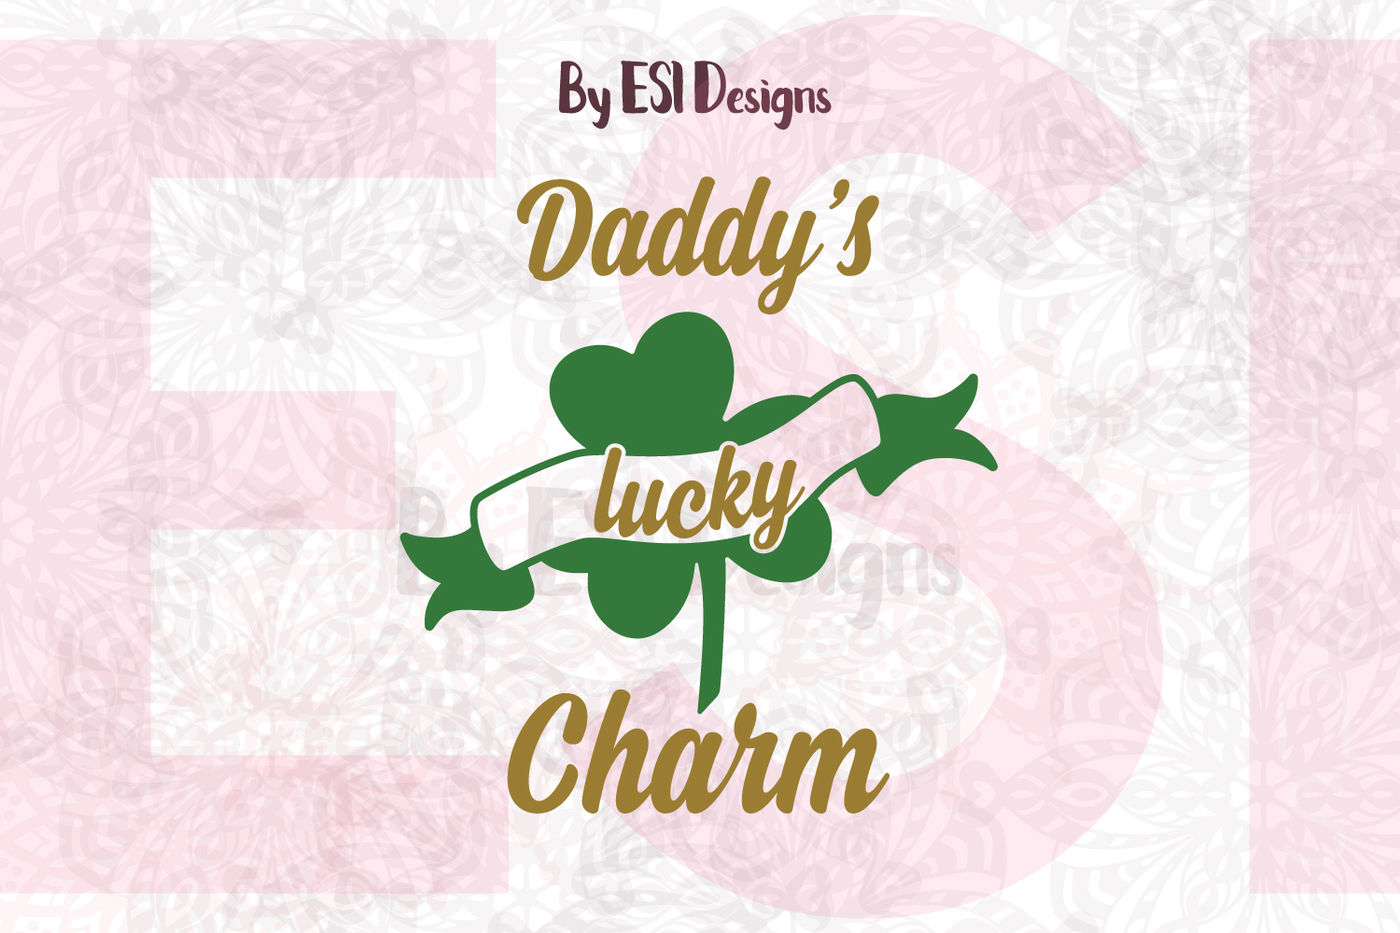 Daddy S Lucky Charm St Patricks Day Svg Dxf Eps Png By Esi